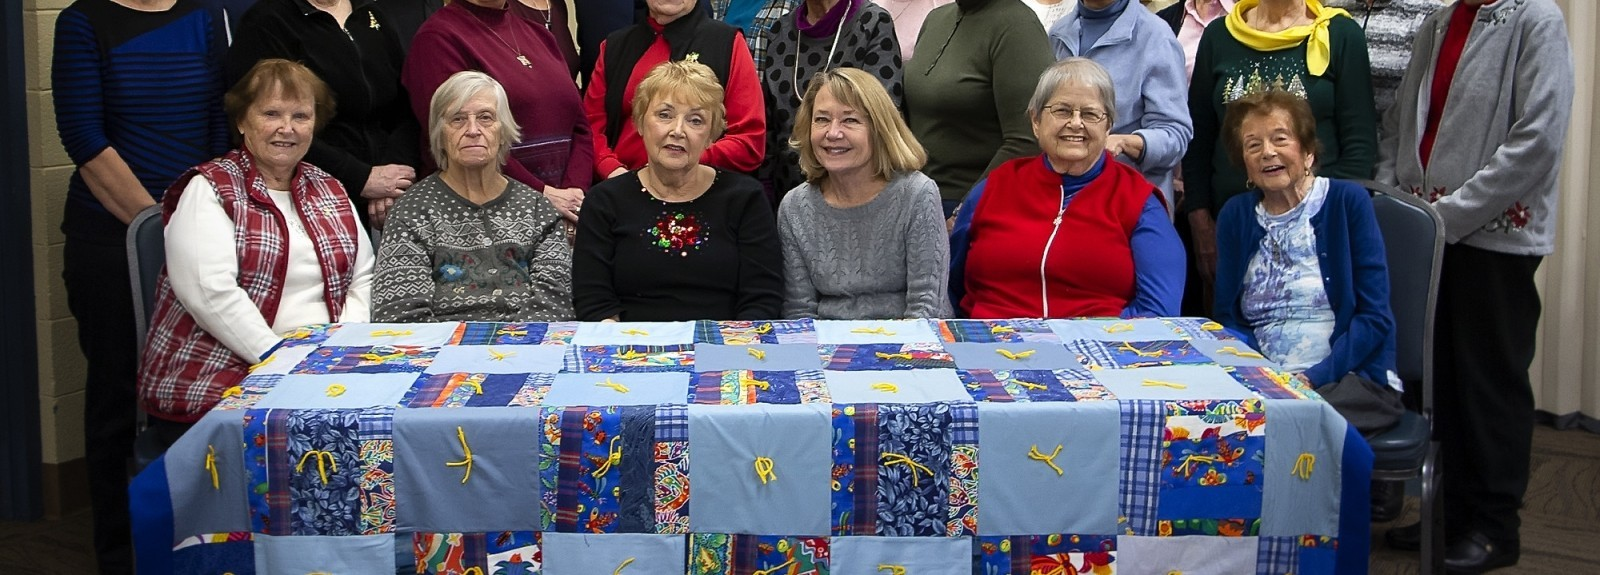 The quilting group at Gethsemane Lutheran Church in Hopkins, Minn. pose with a beautiful quilt they created.